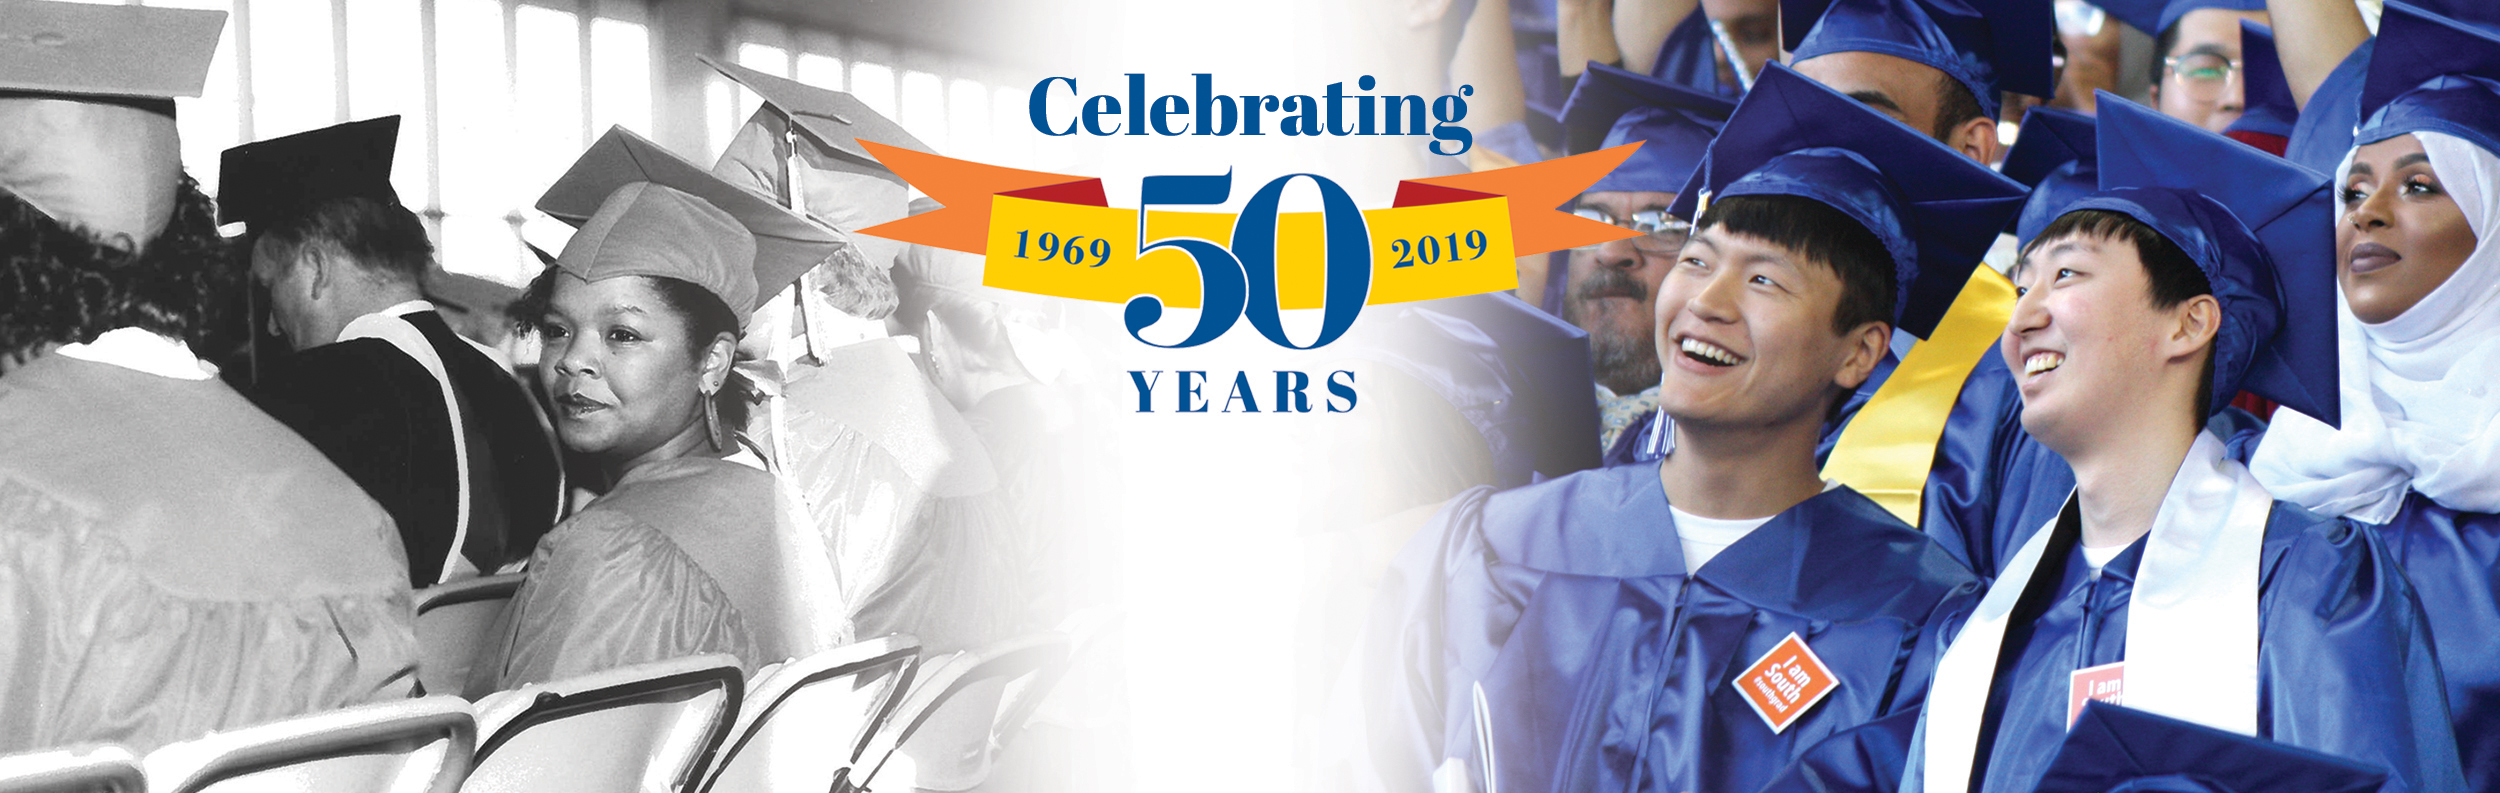 50th Anniversary logo with graduates from 1969 and 2019